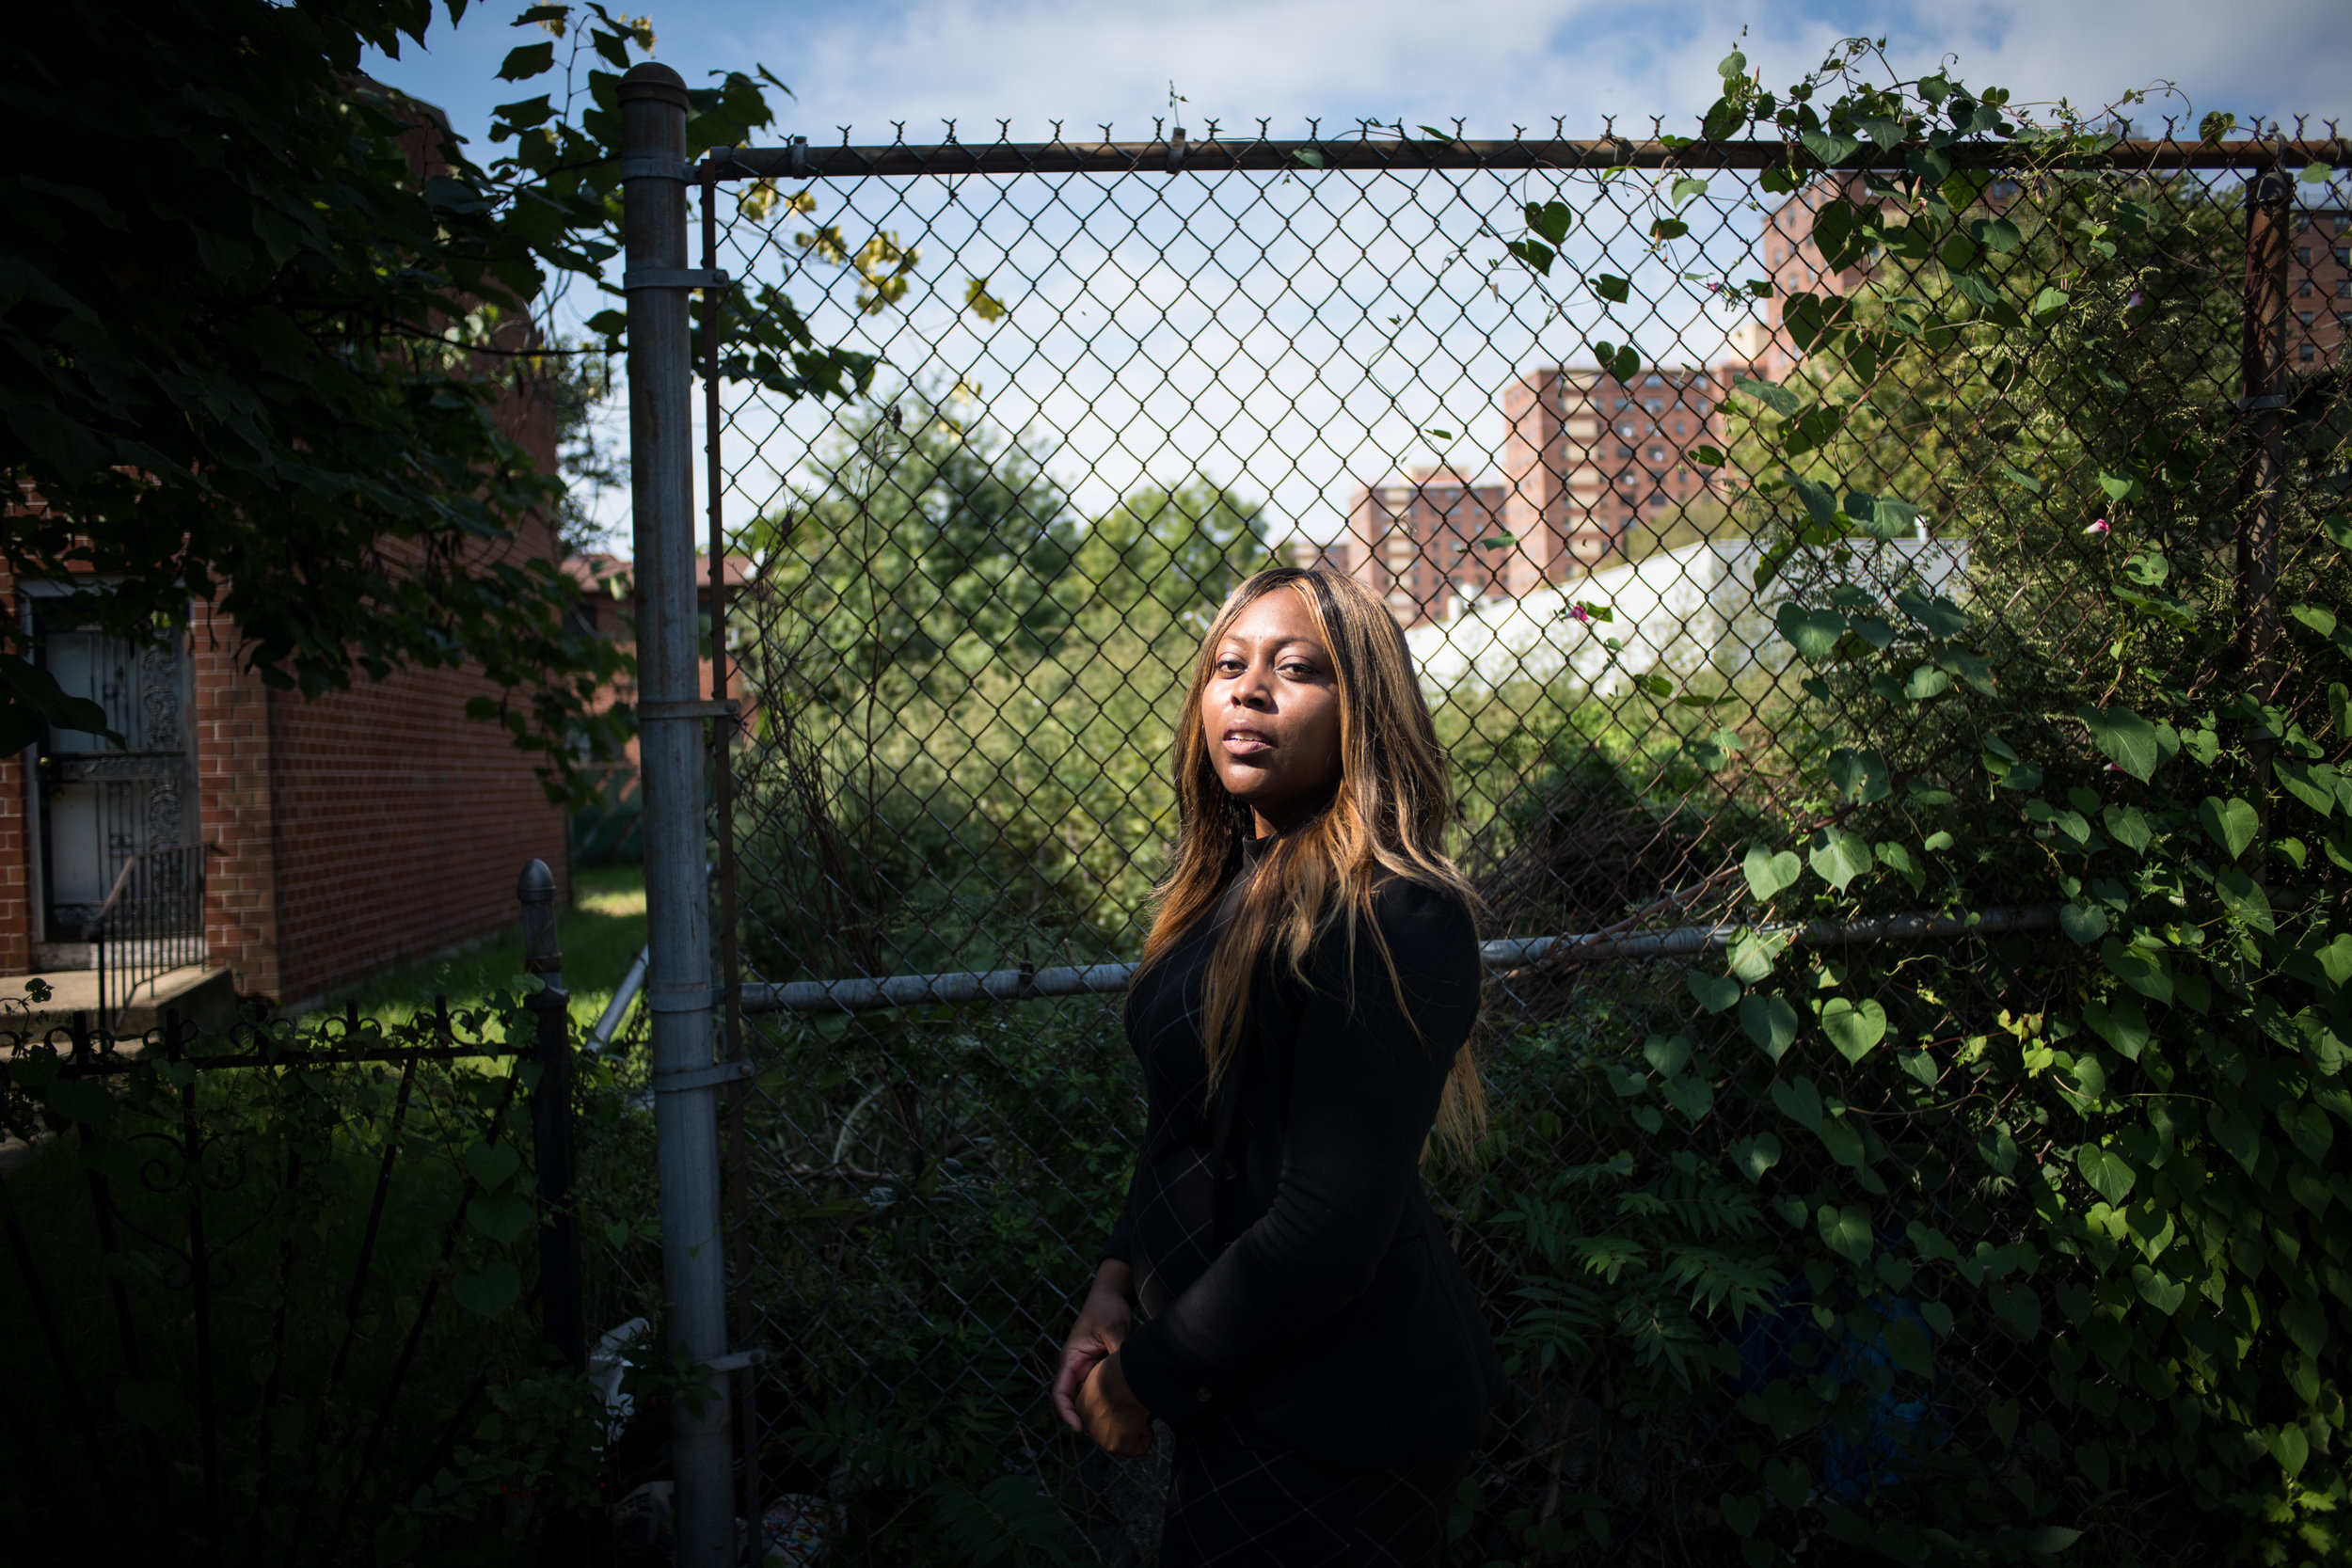 Audra Palacio on Christopher Ave. near her family's home in Brownsville, NY October 2018. As a child, Palacio moved from public housing to the nearby Nehemiah homes—affordable homes that came with cash subsidies from the government. Today, there's a stark economic divide block-by-block between generations going through the Nehemiah homes versus public housing nearby. Photographed for NPR